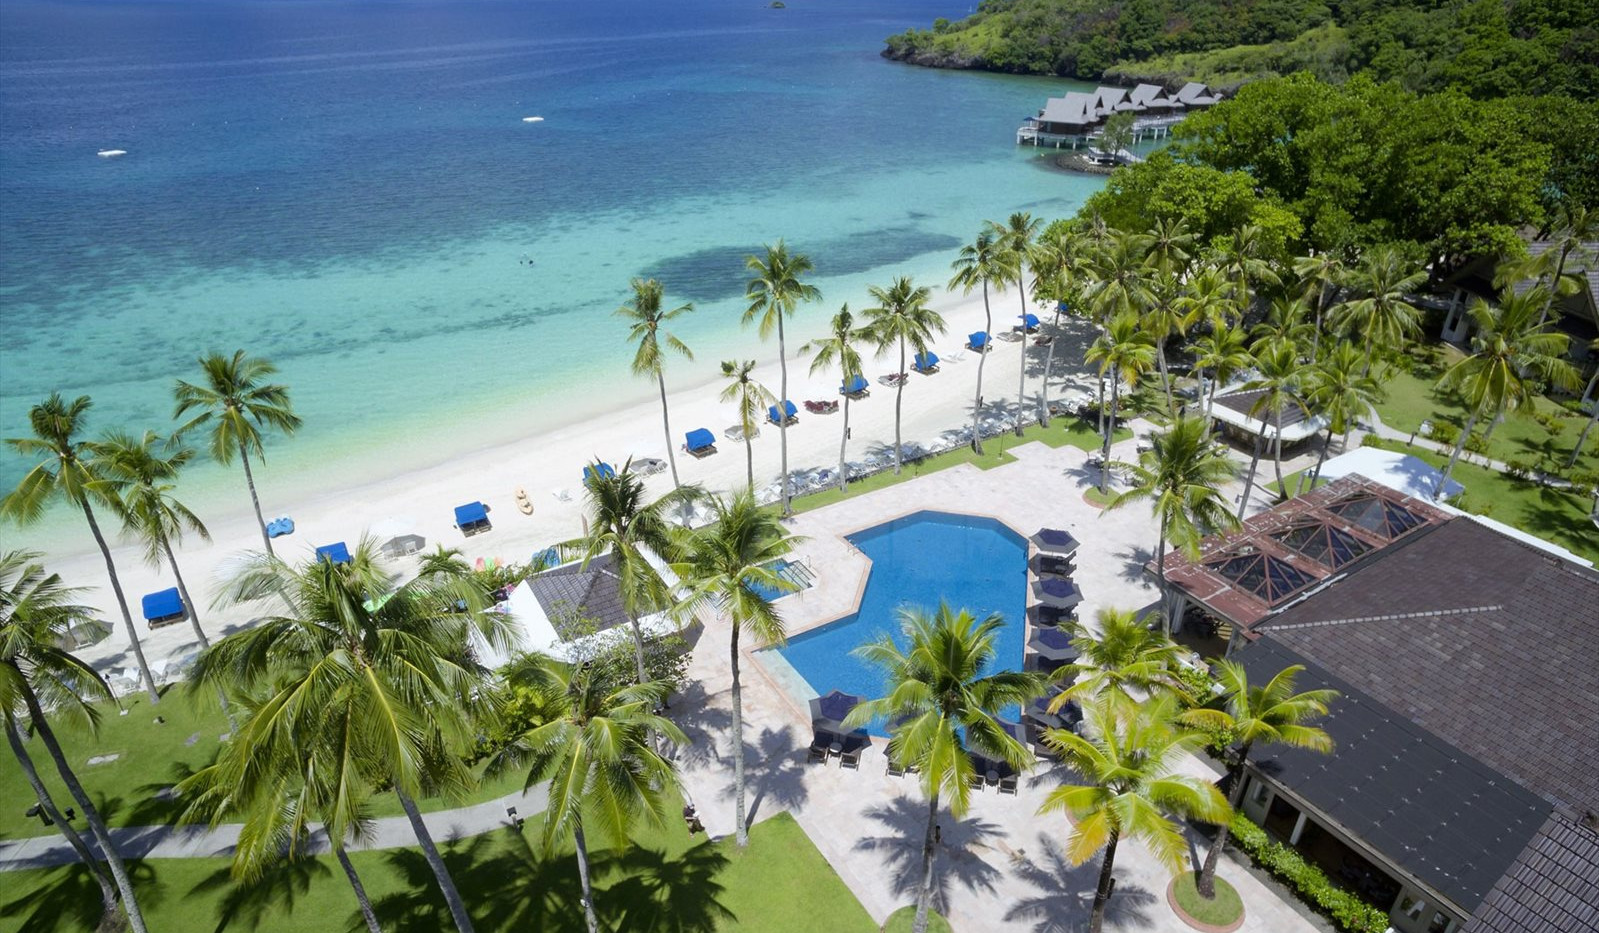 Palau Pacific Resort, Palau